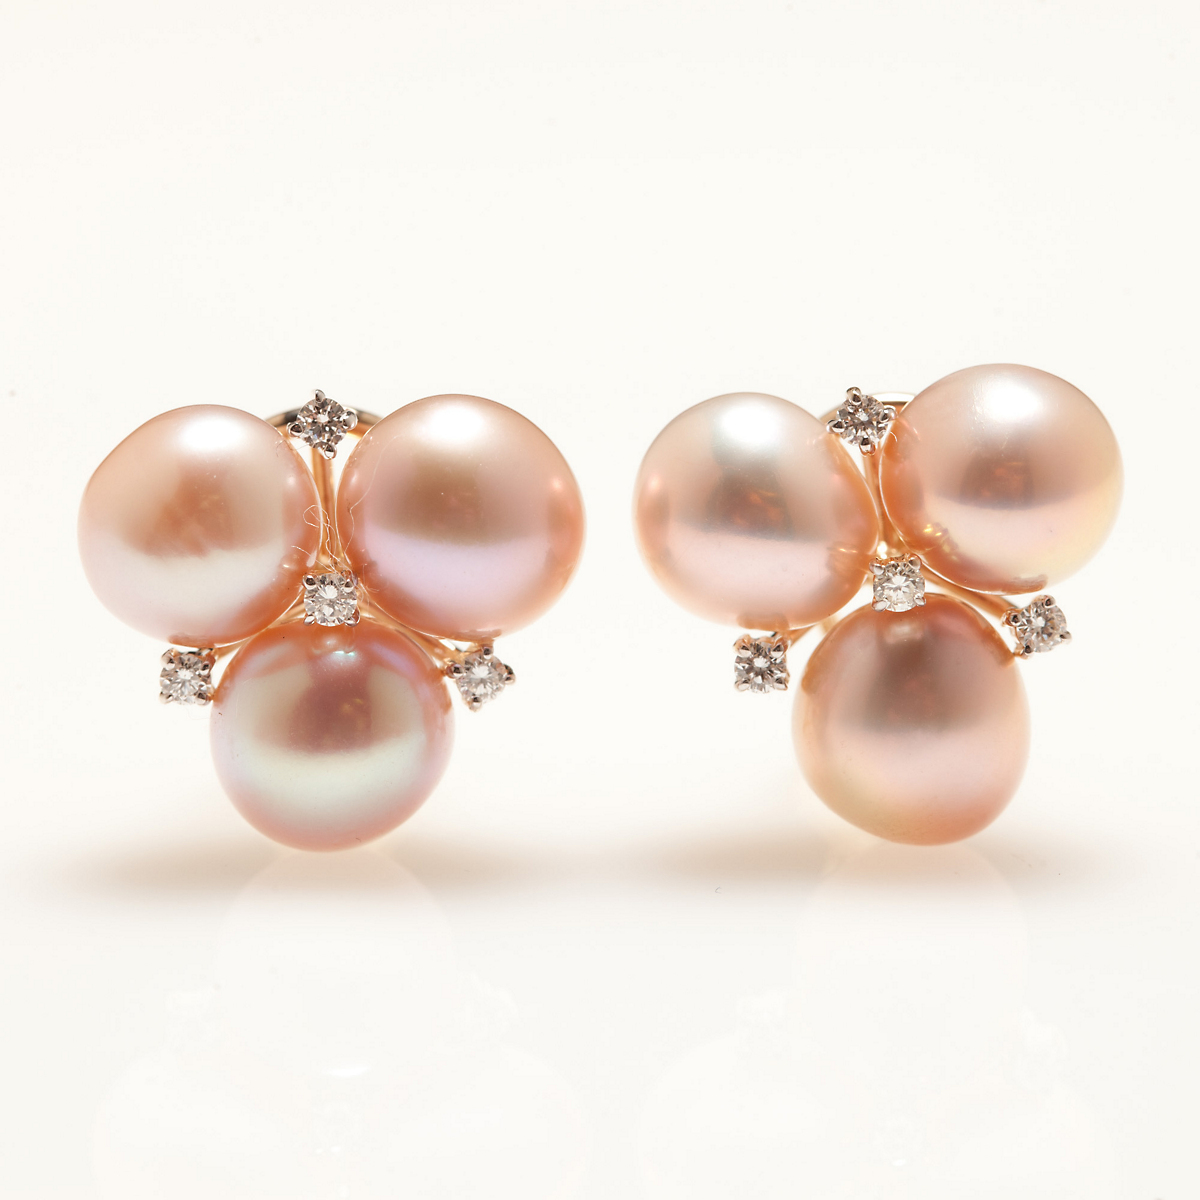 Gump's Freshwater Cultured Pearl Cluster Earrings